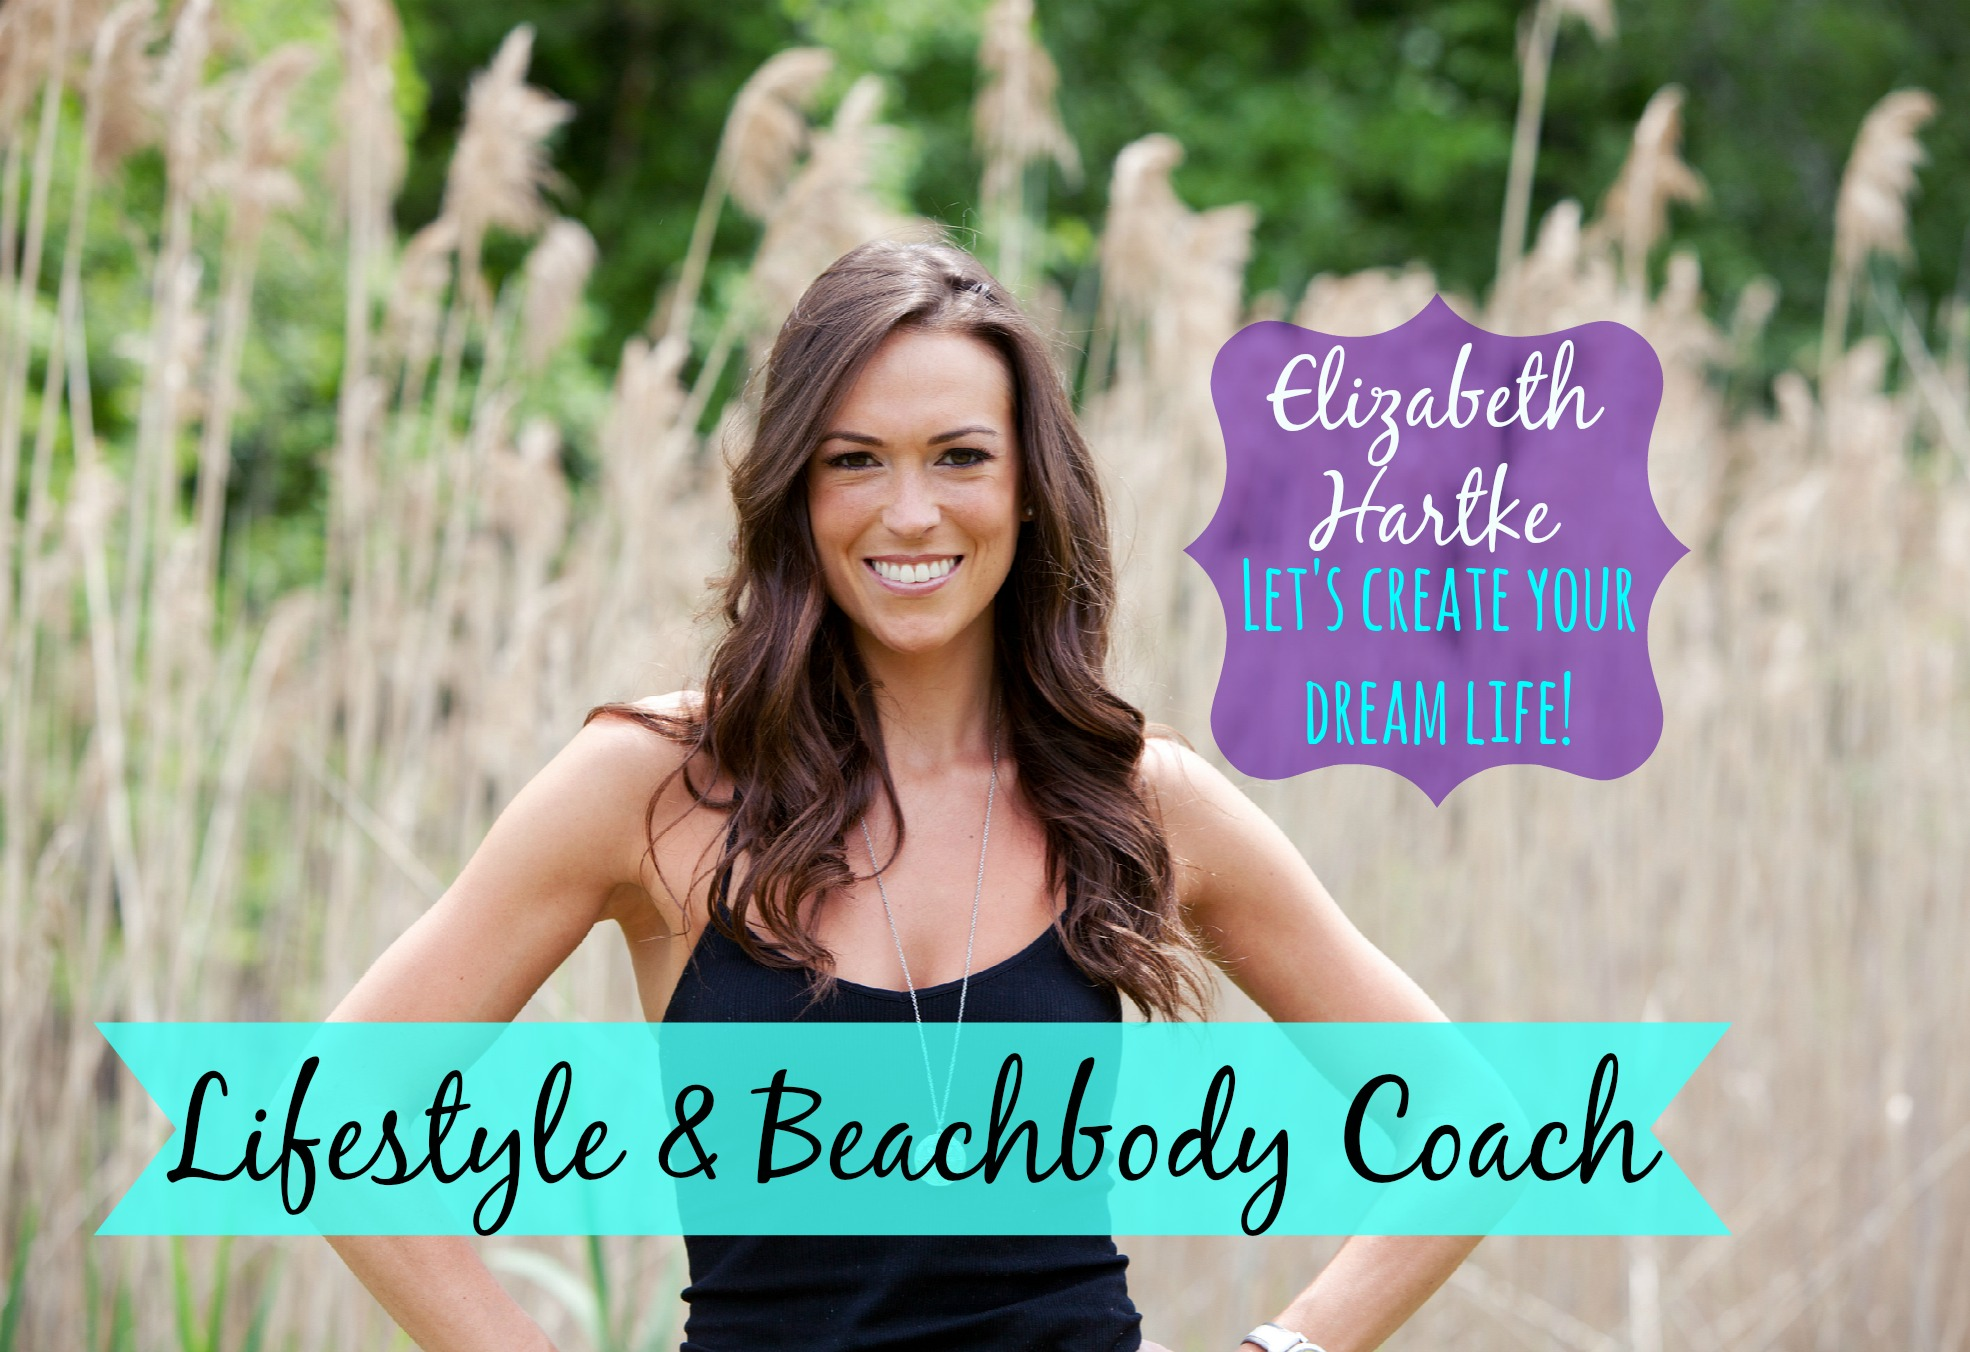 Why Be e a Beachbody Coach Elizabeth Hartke